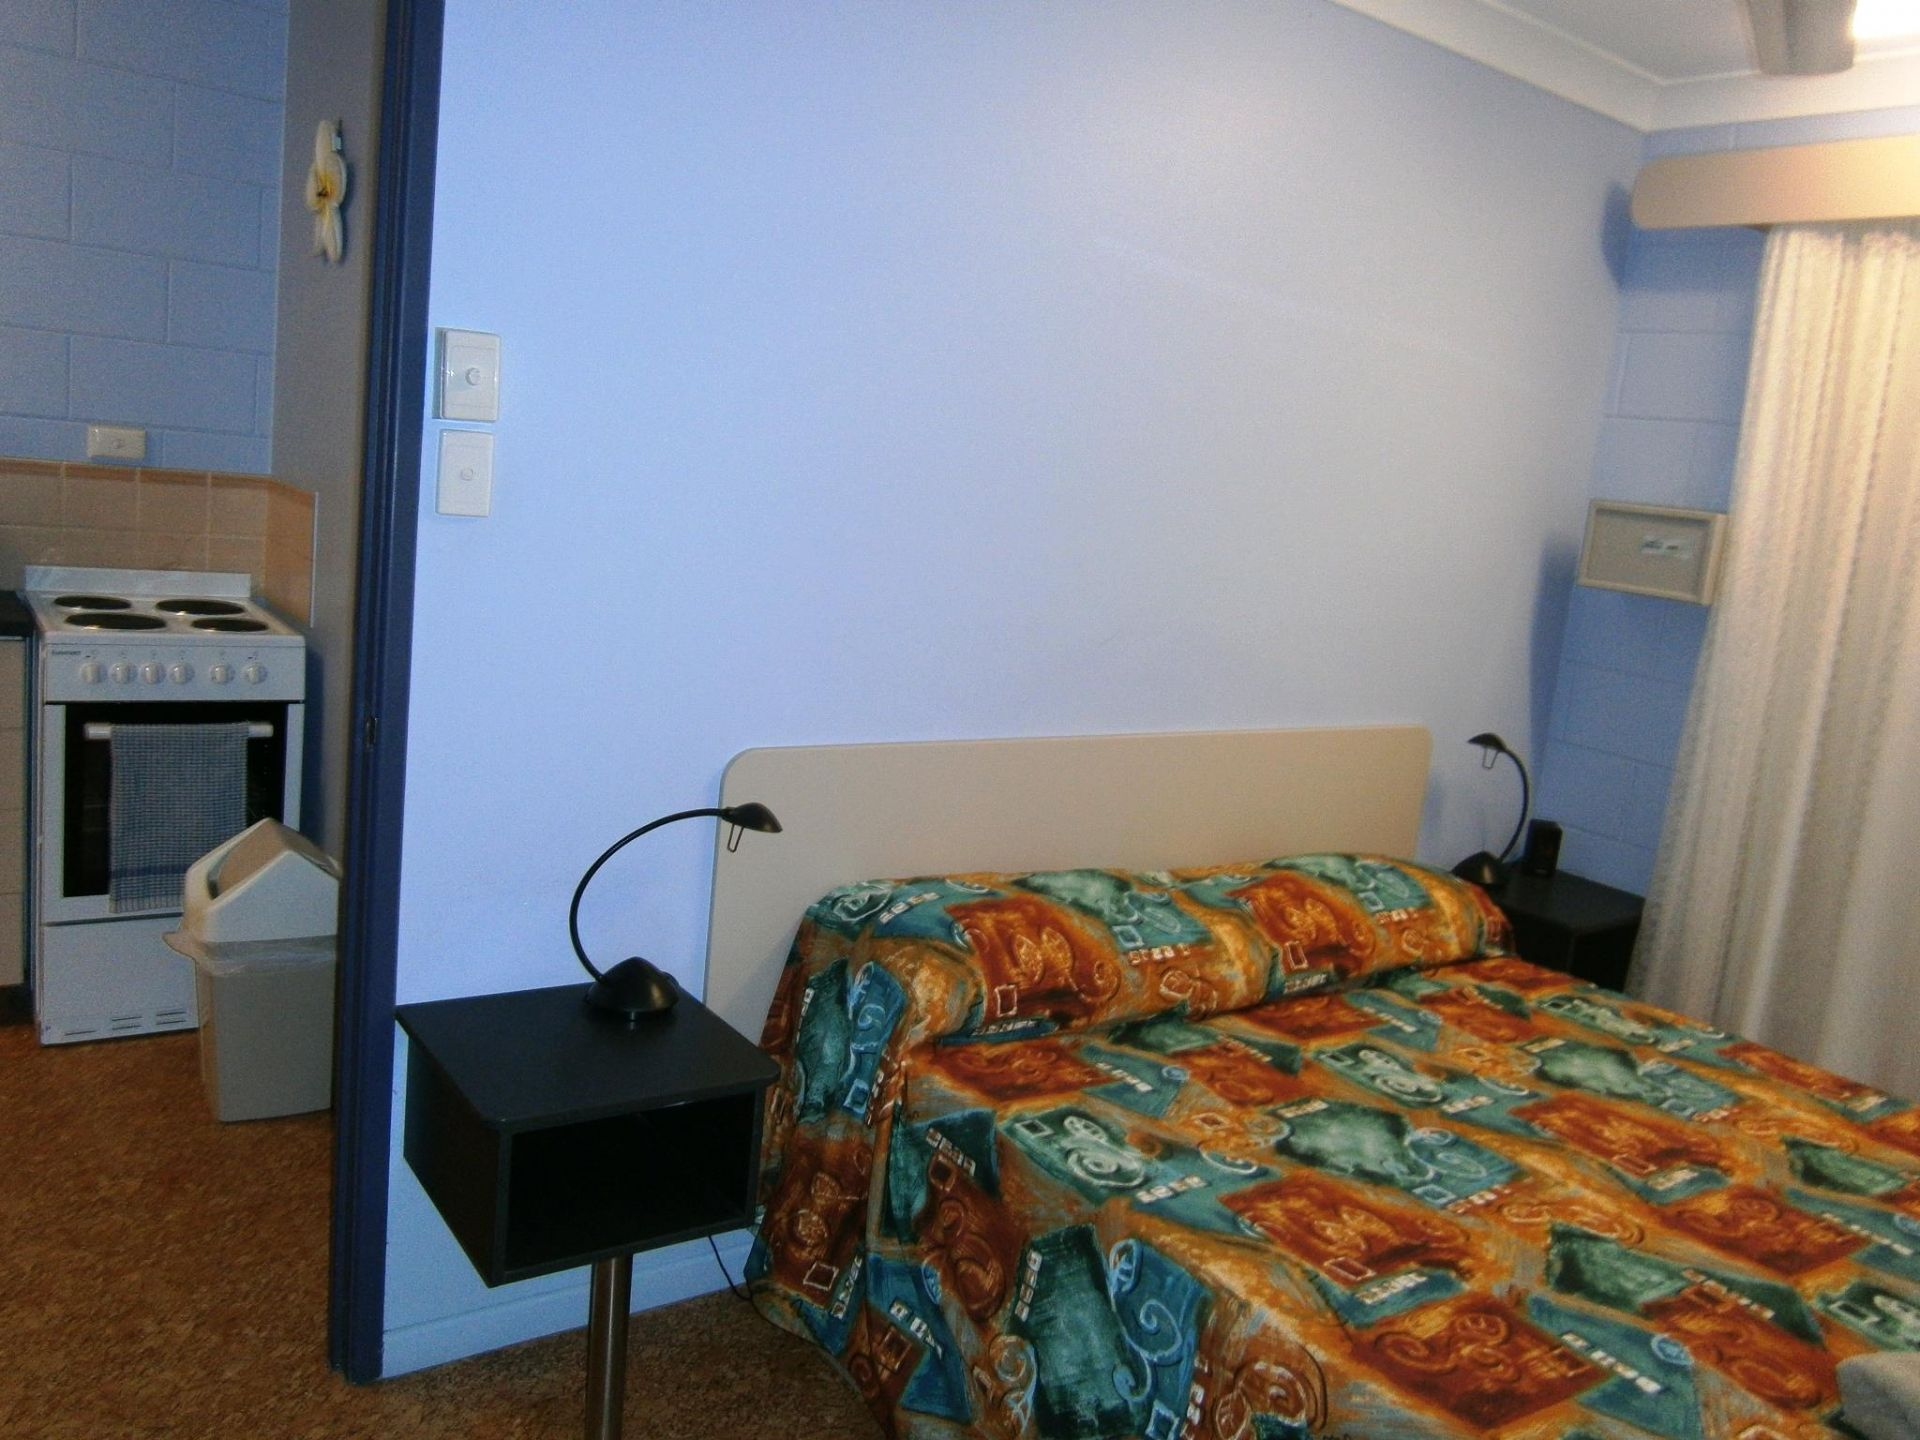 ACCOMMODATION BUSINESS. FREEHOLD WITH 9 X 1BR UNITS PLUS 2BR MANAGERS RESIDENCE